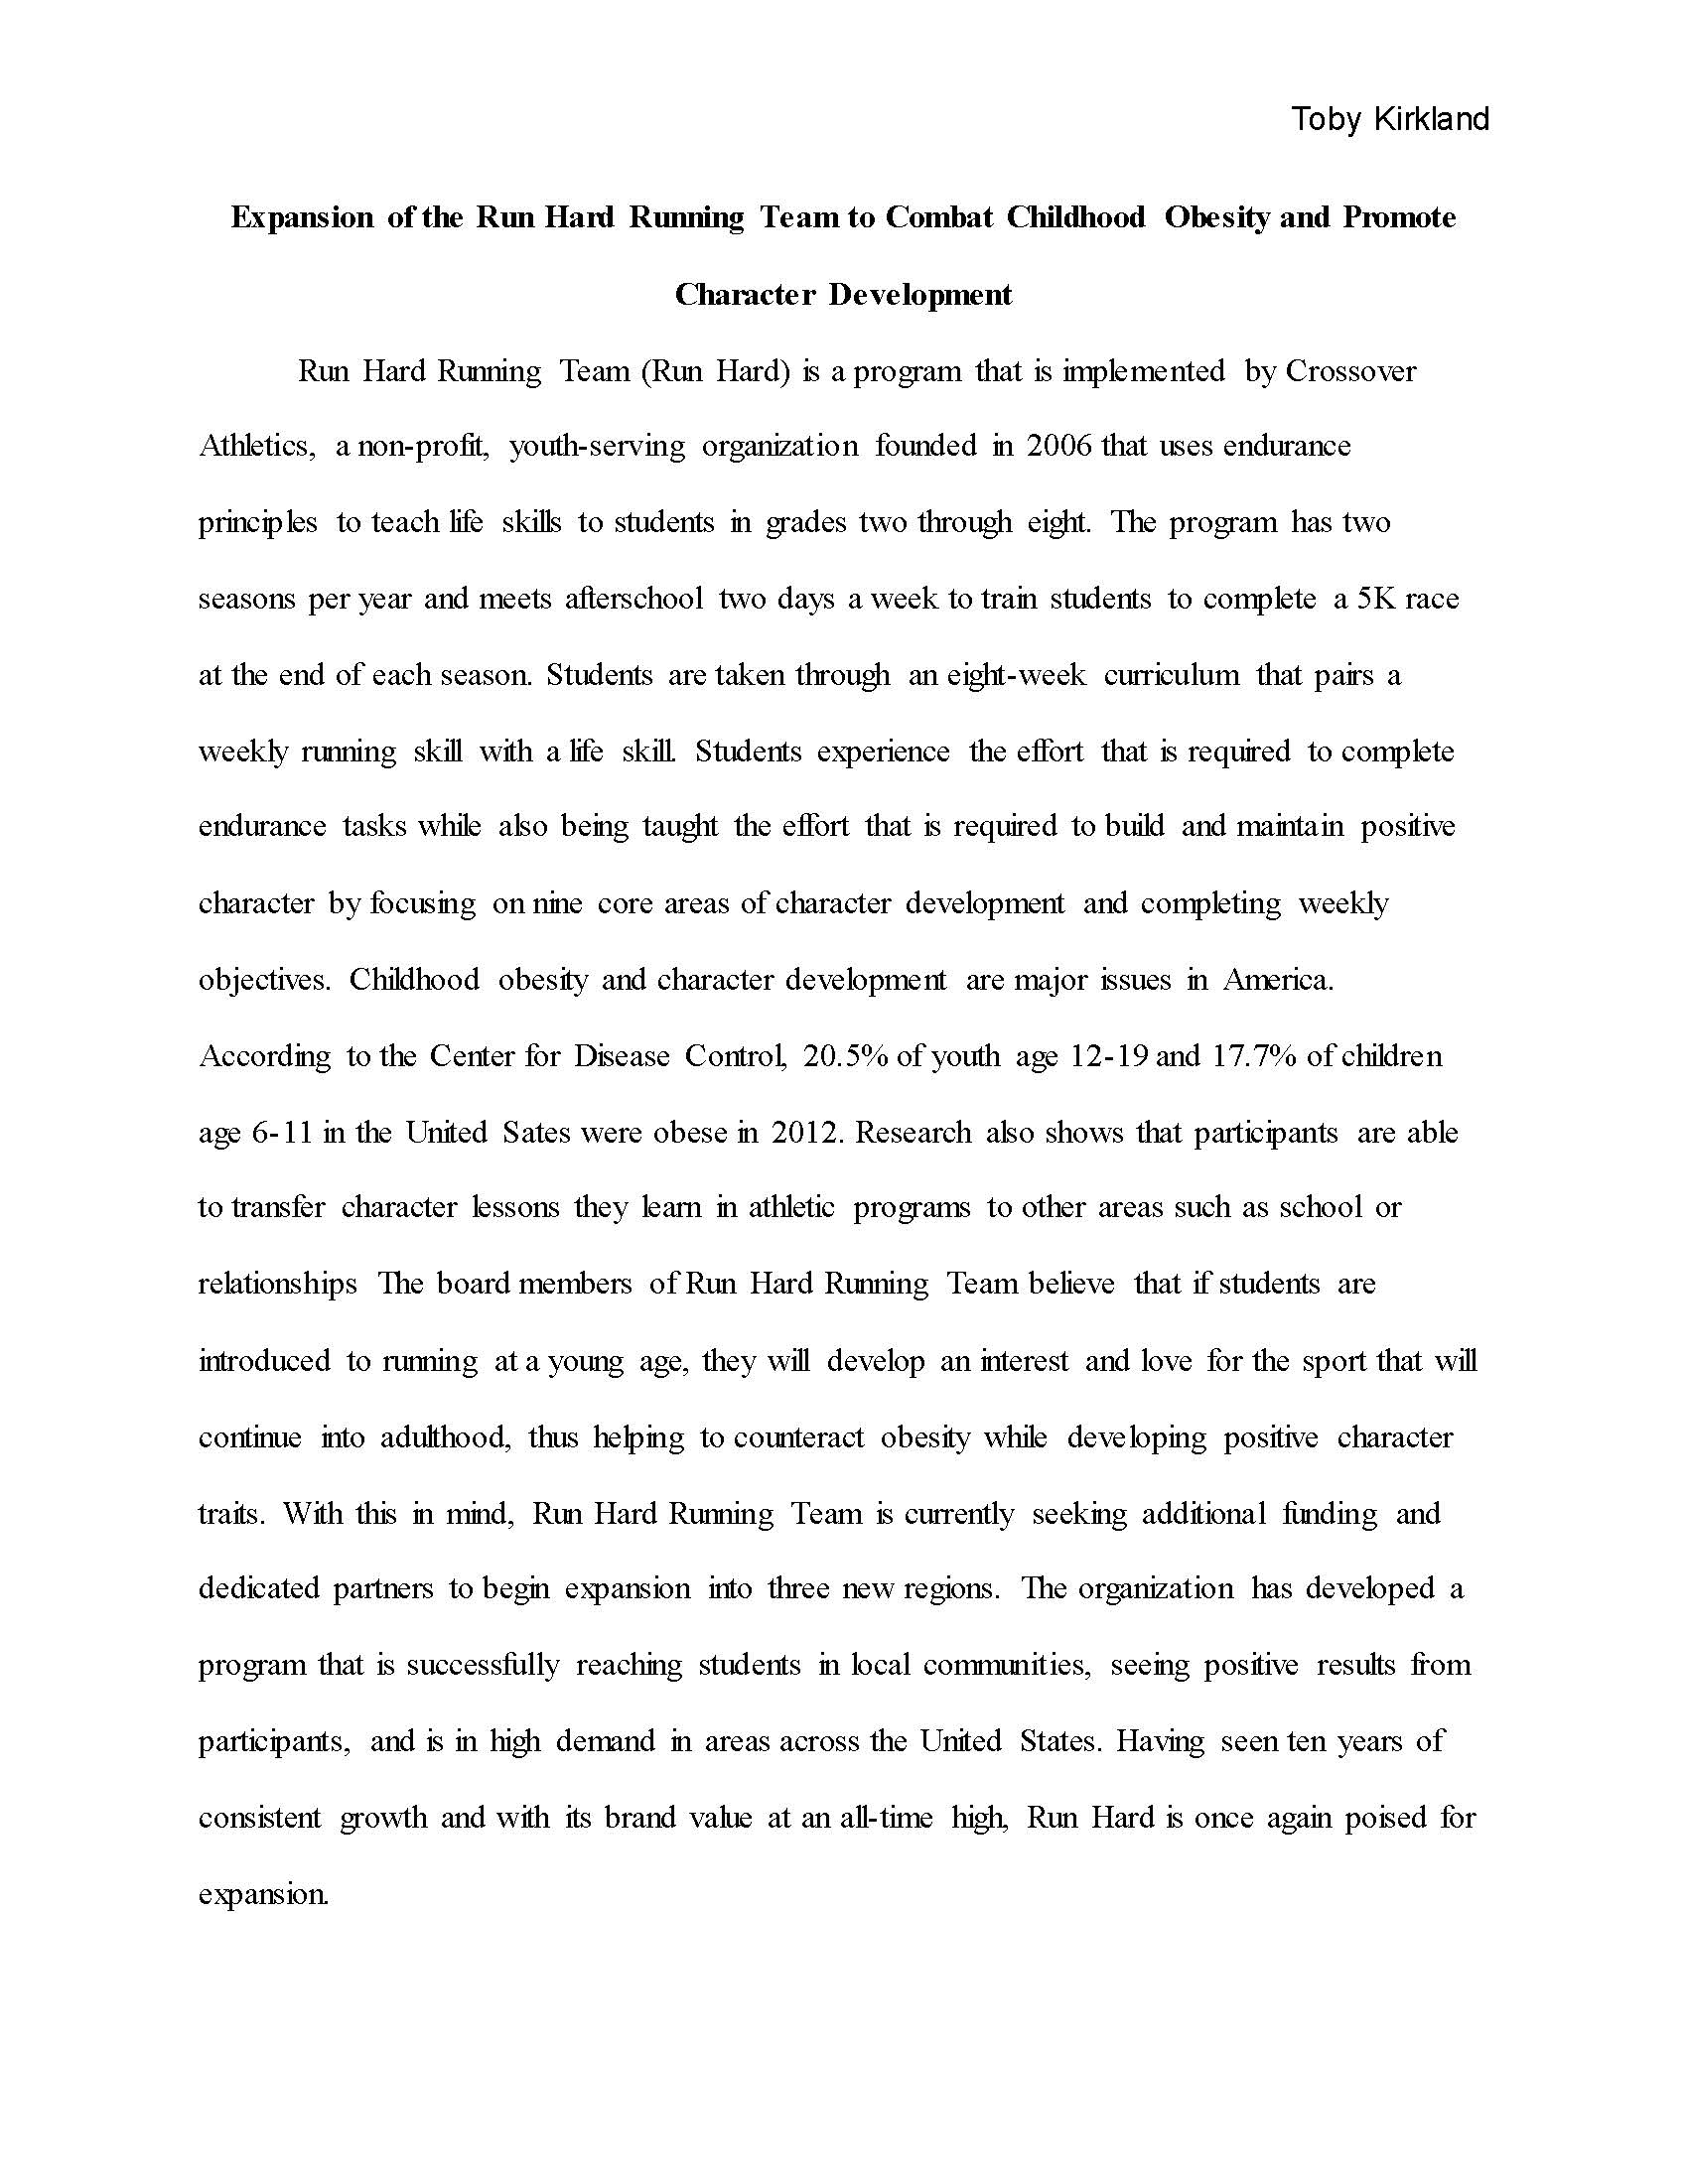 002 Research Paper Childhood Obesity Essay Sample Barca Fontanacountryinn Com Child Marvelous Argumentative Topics About On Full